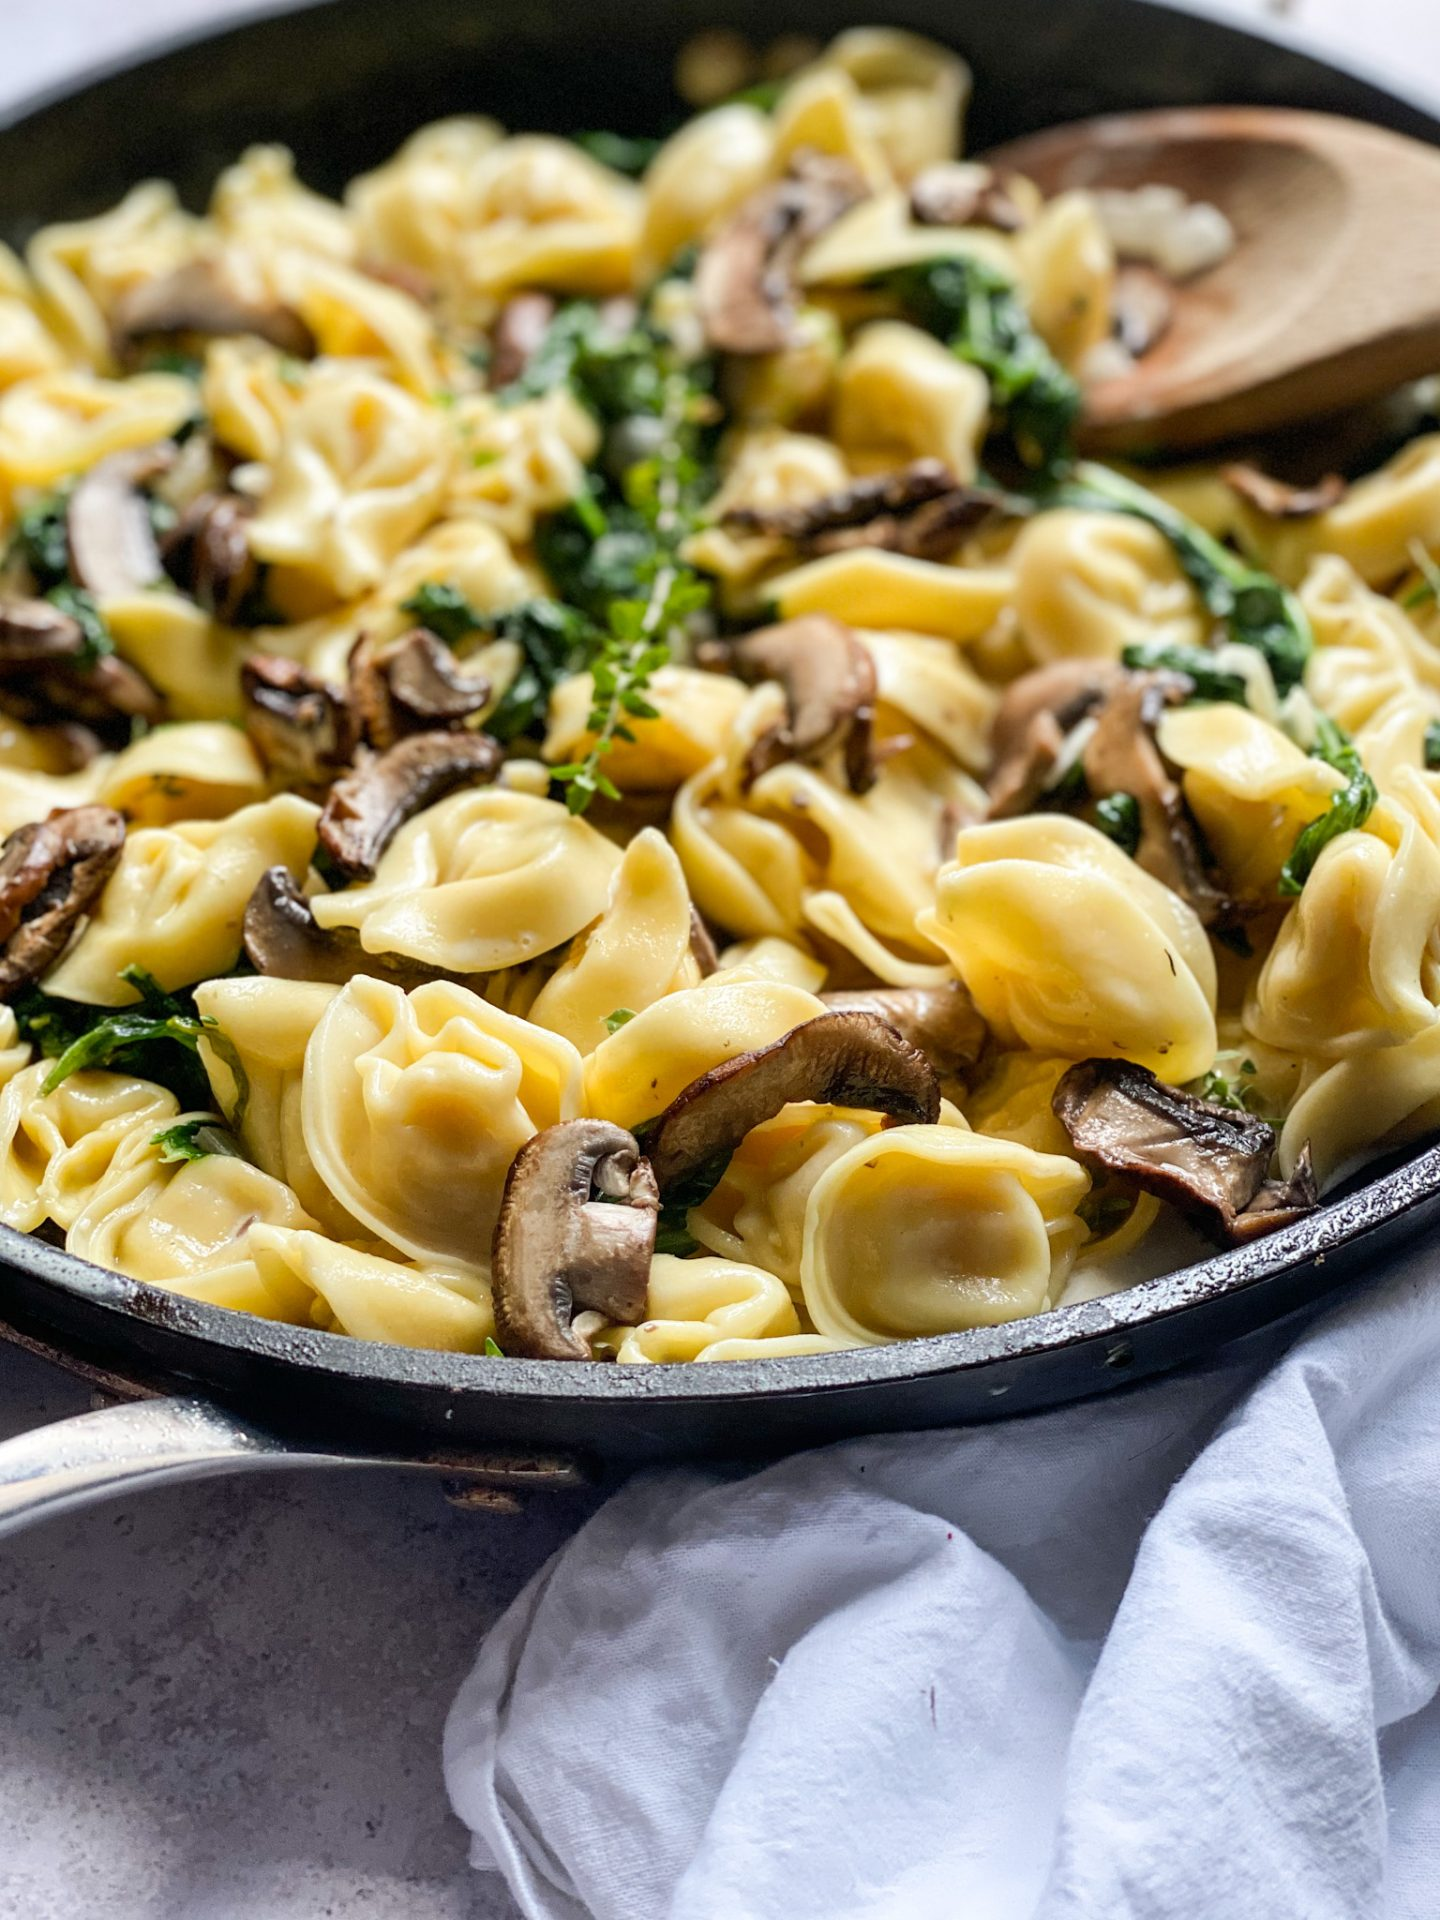 Chocolate and Lace Shares her recipe for Creamy Mushroom and Spinach Tortellini